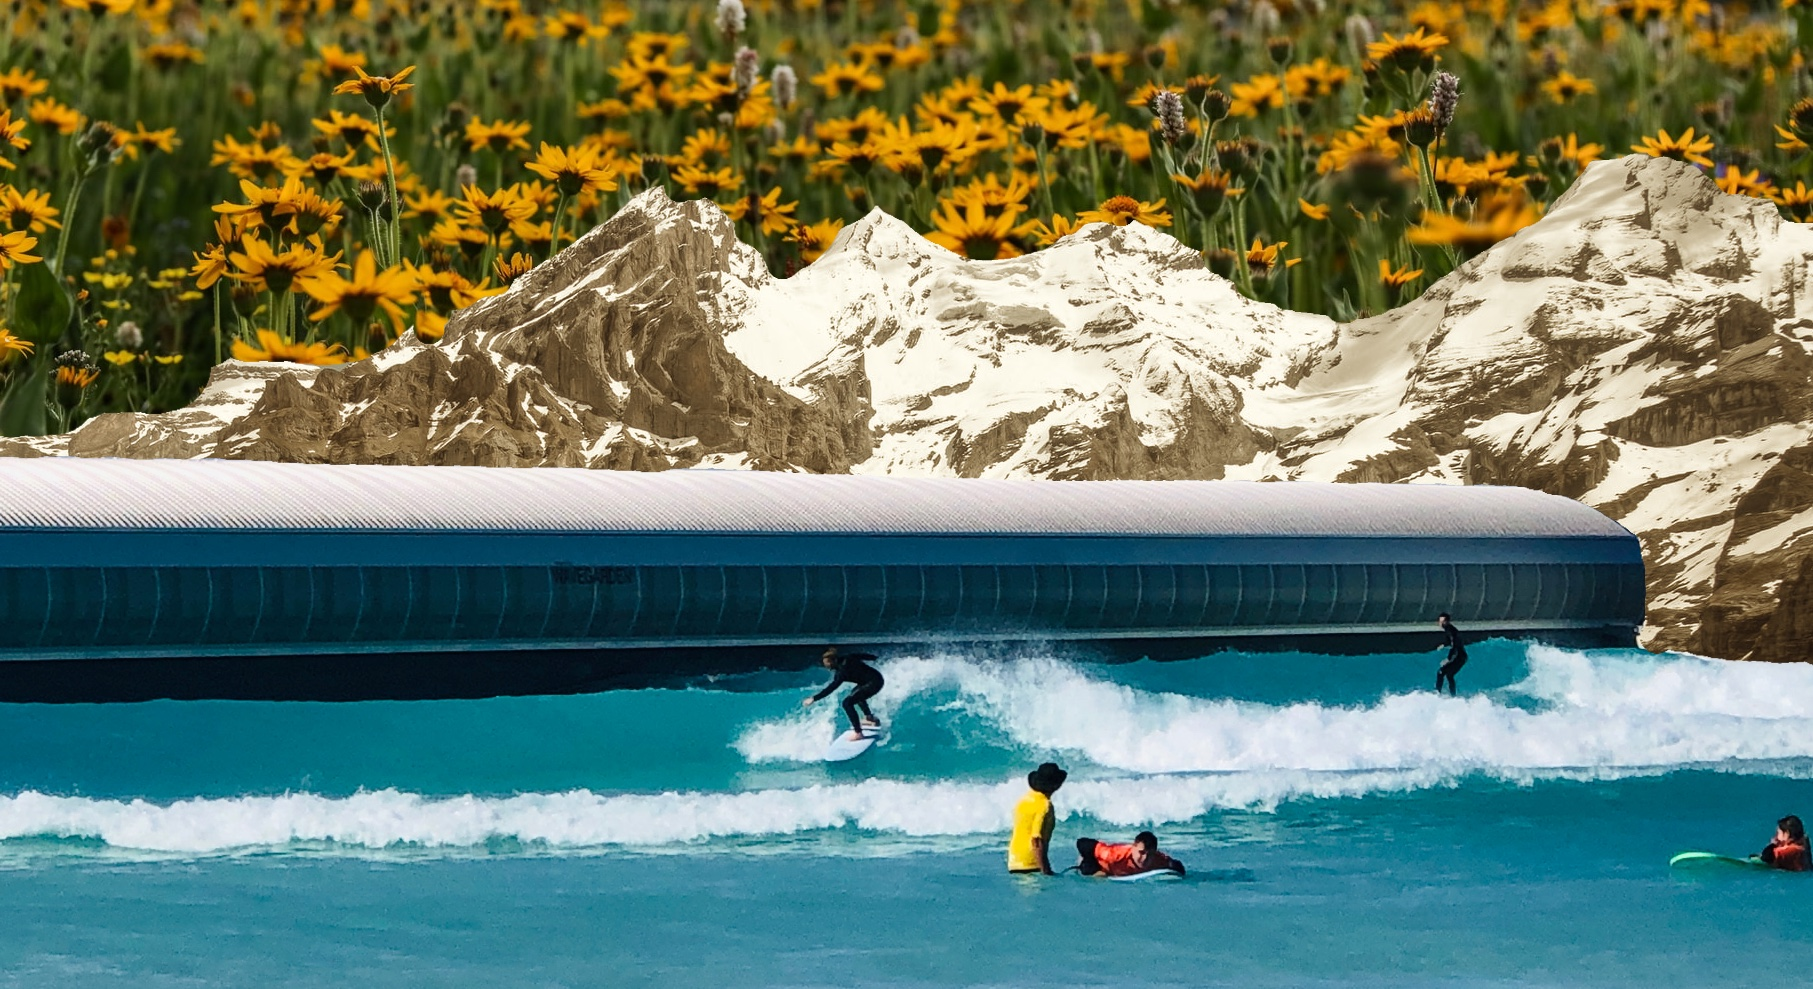 editorial art for switzerland wave pool